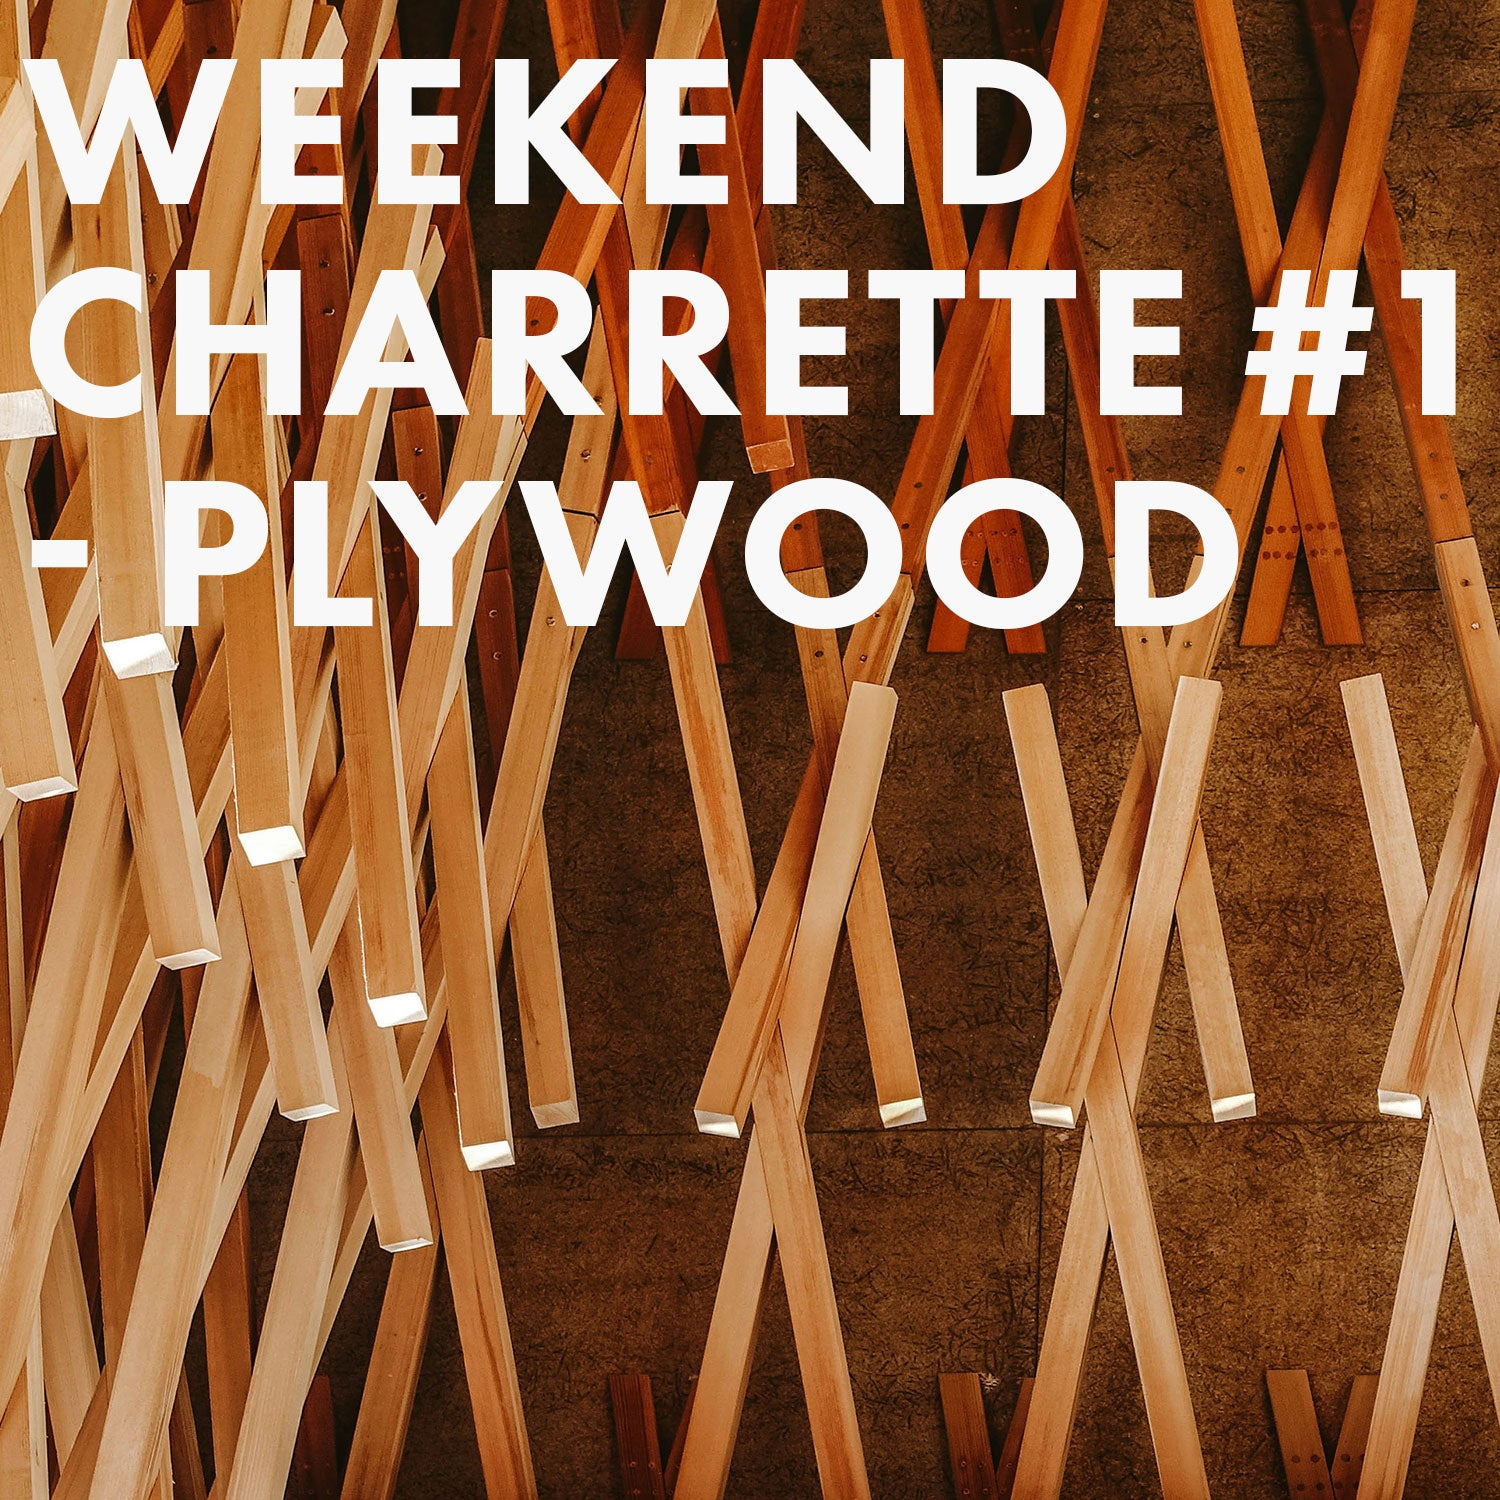 Weekend Charrette #1 - Plywood